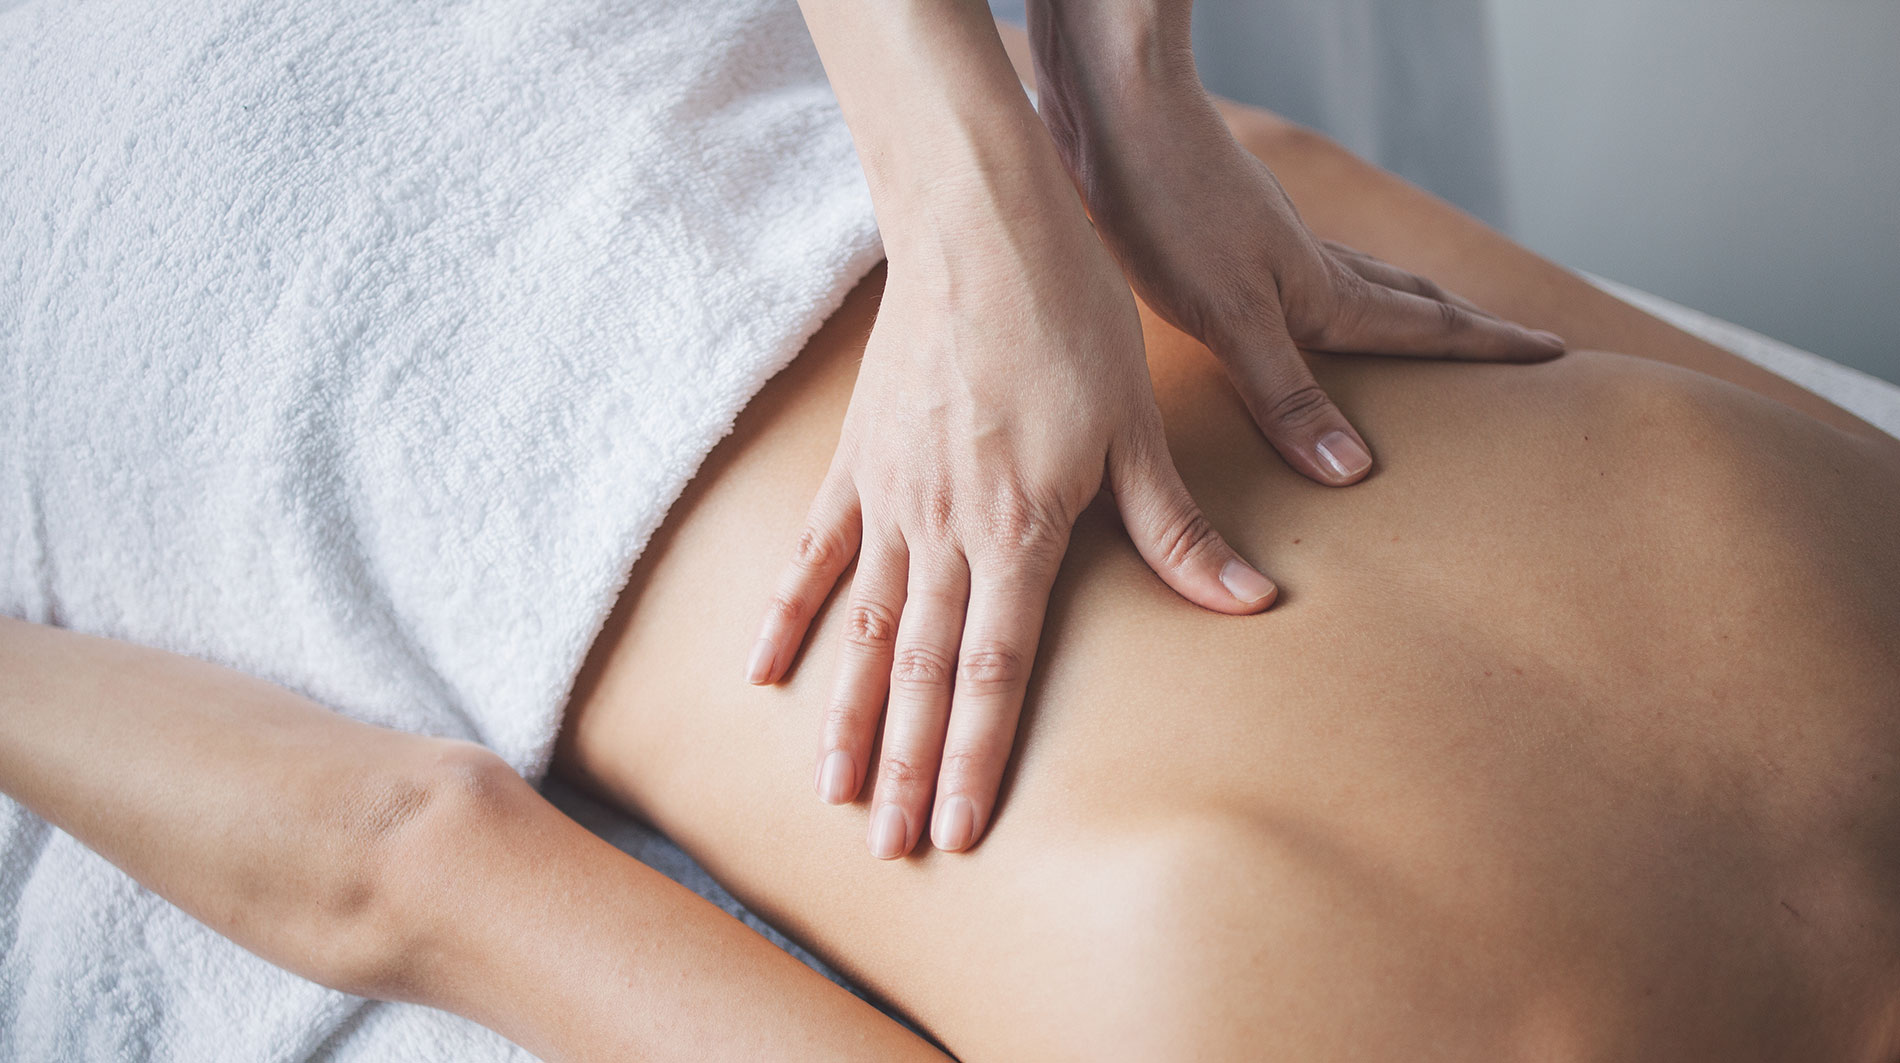 Elizabeth Ann Therapies is The Premier Service based in Bawtry, Doncaster.